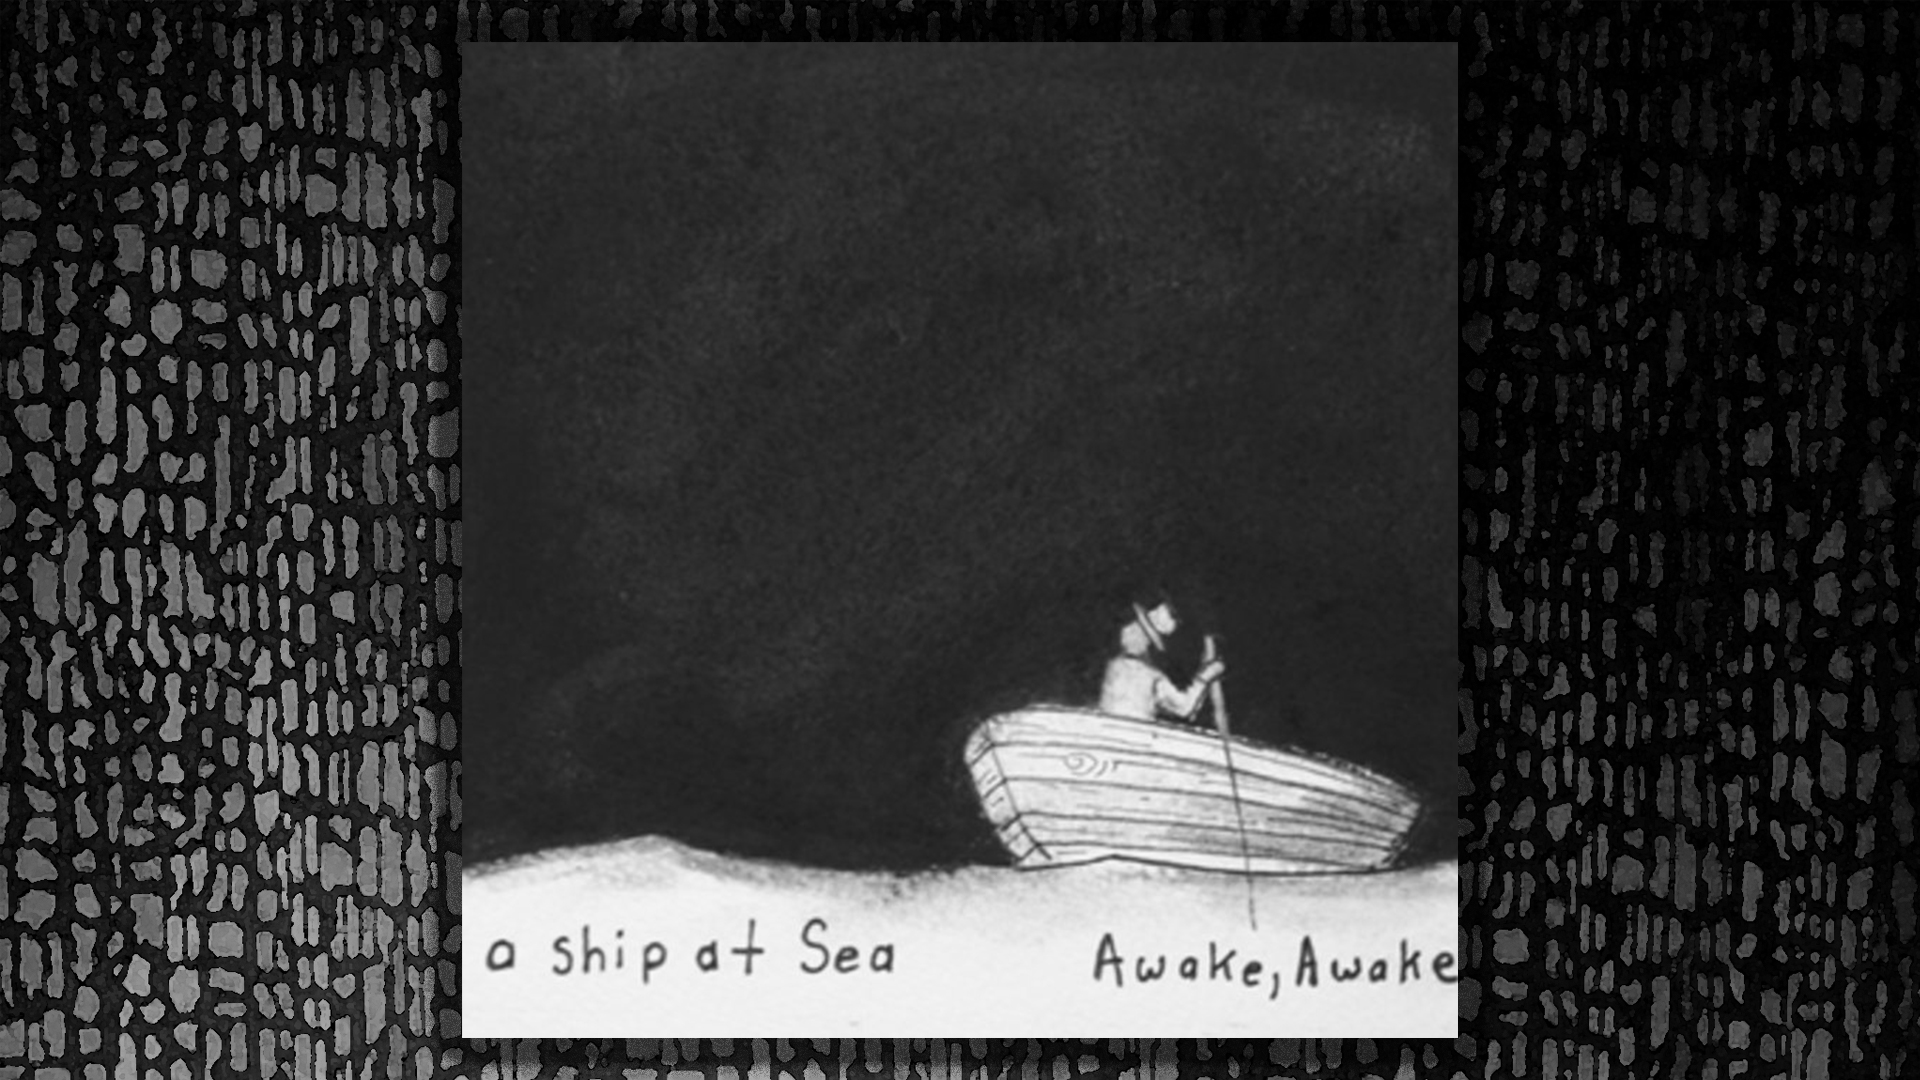 AWAKE AWAKE, A SHIP AT SEA